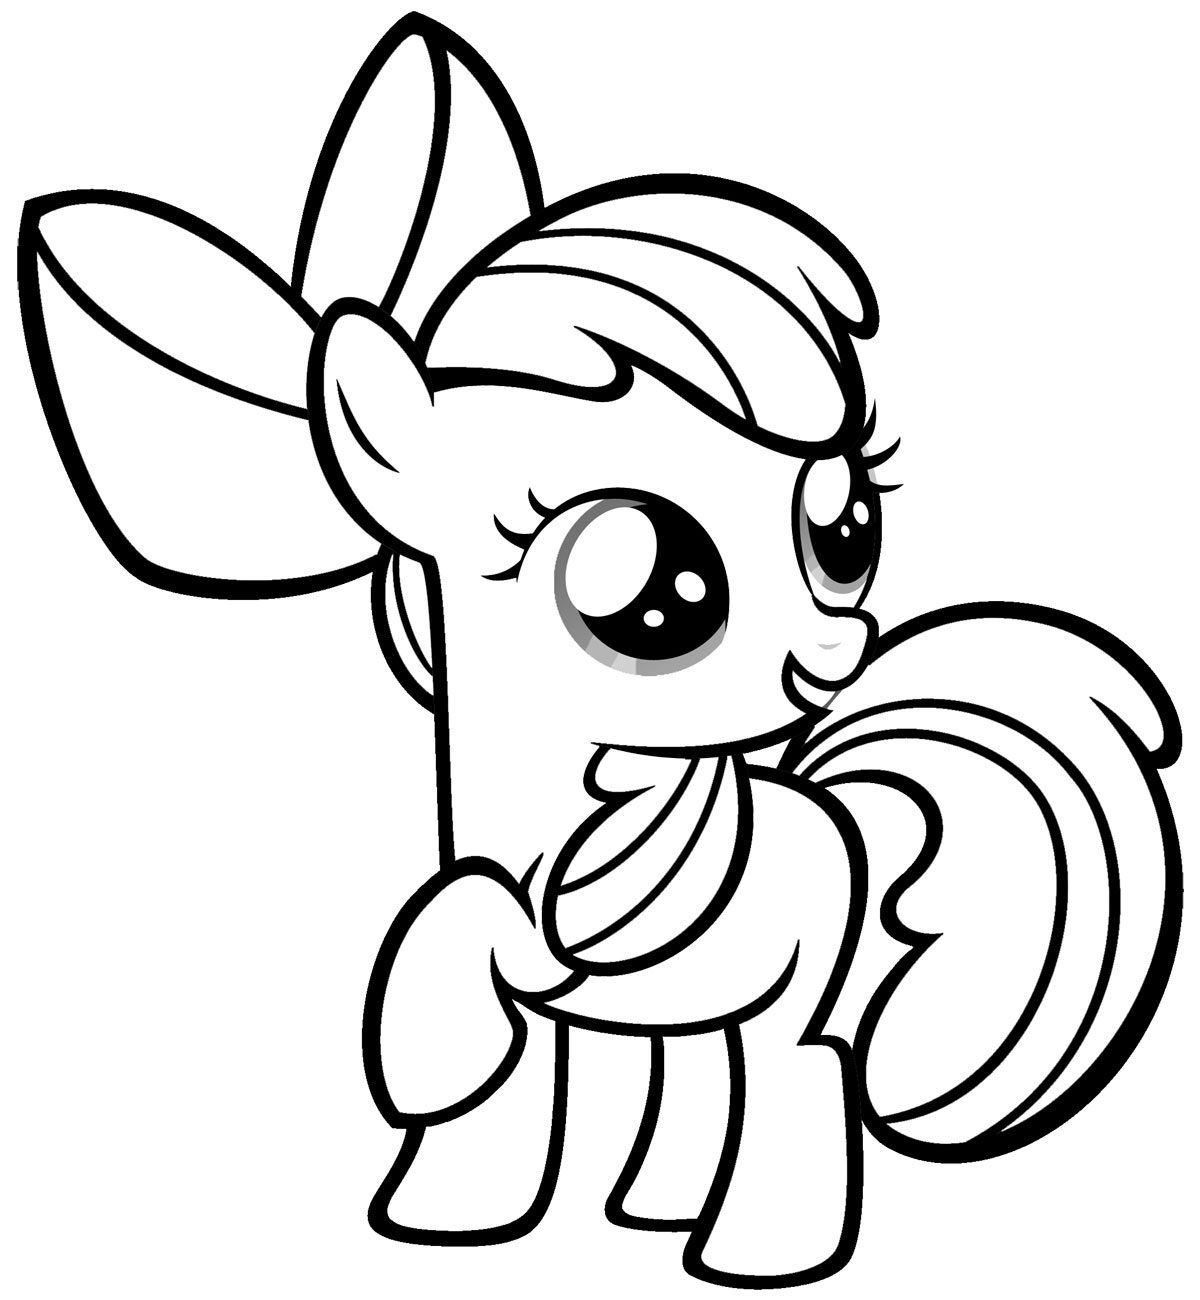 coloring pages for girls 02 ponies pinterest easy drawings easy printable coloring pages for girls easy coloring pages for girls